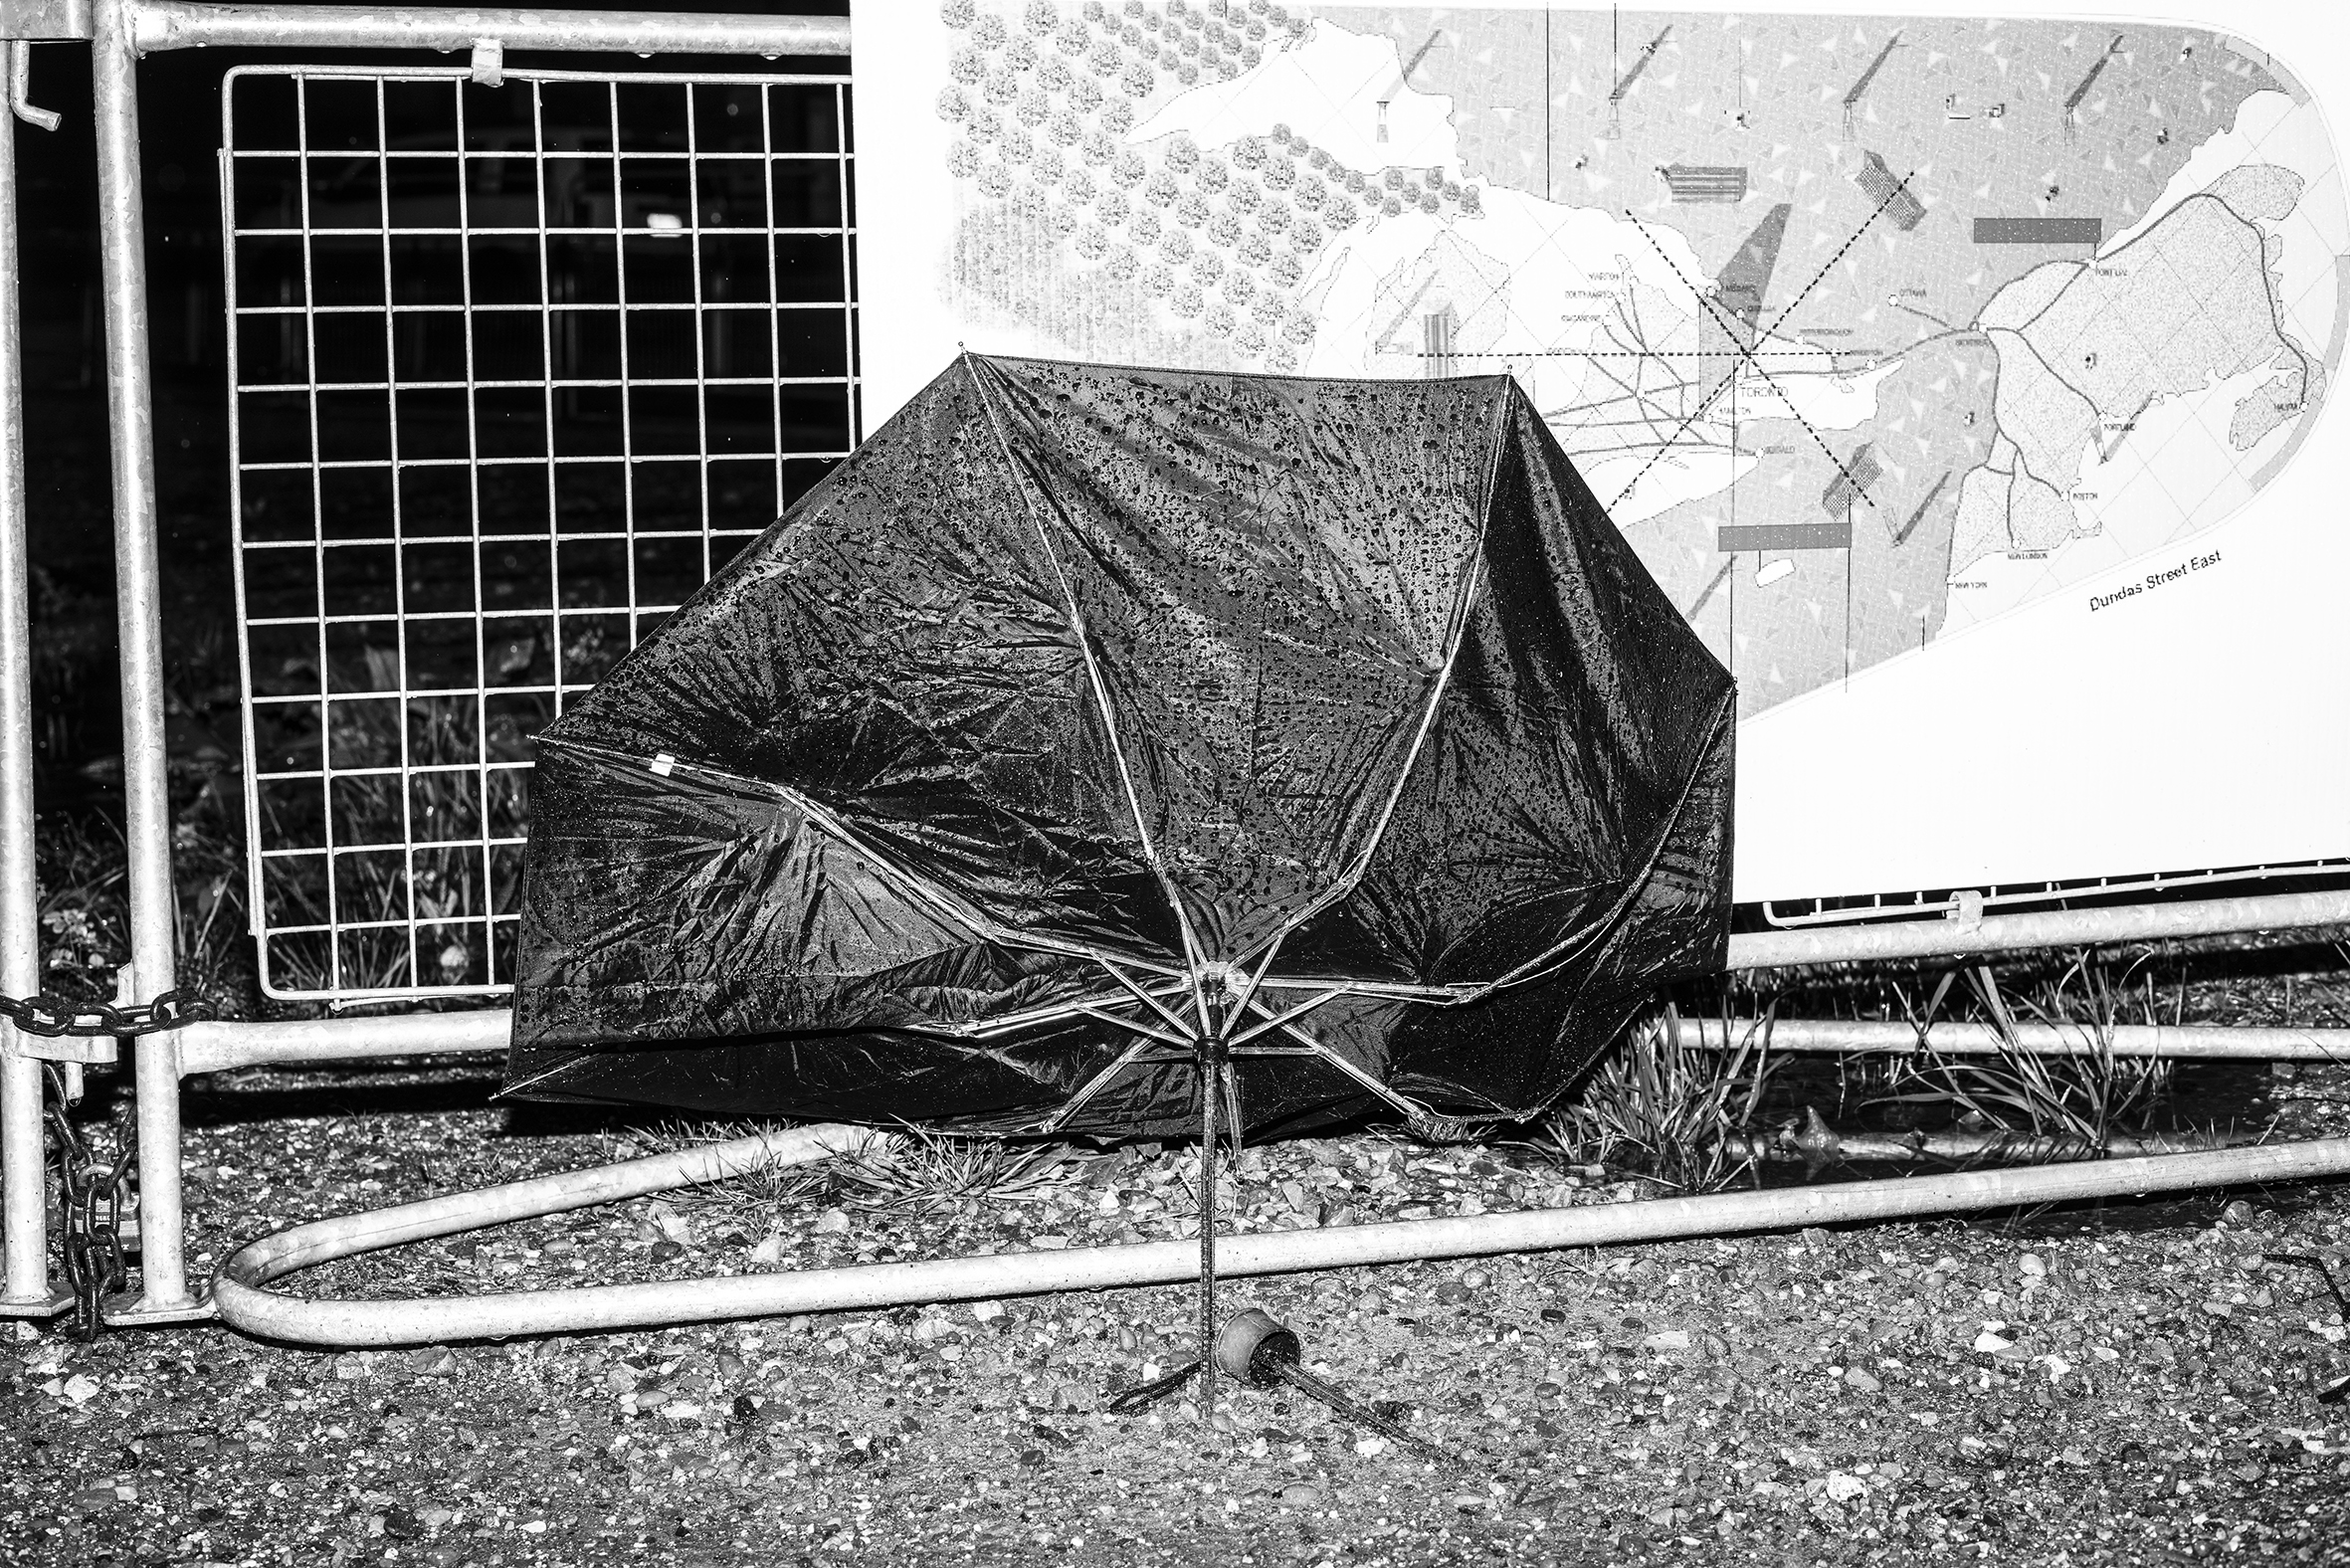 BROKEN_UMBRELLA.jpg